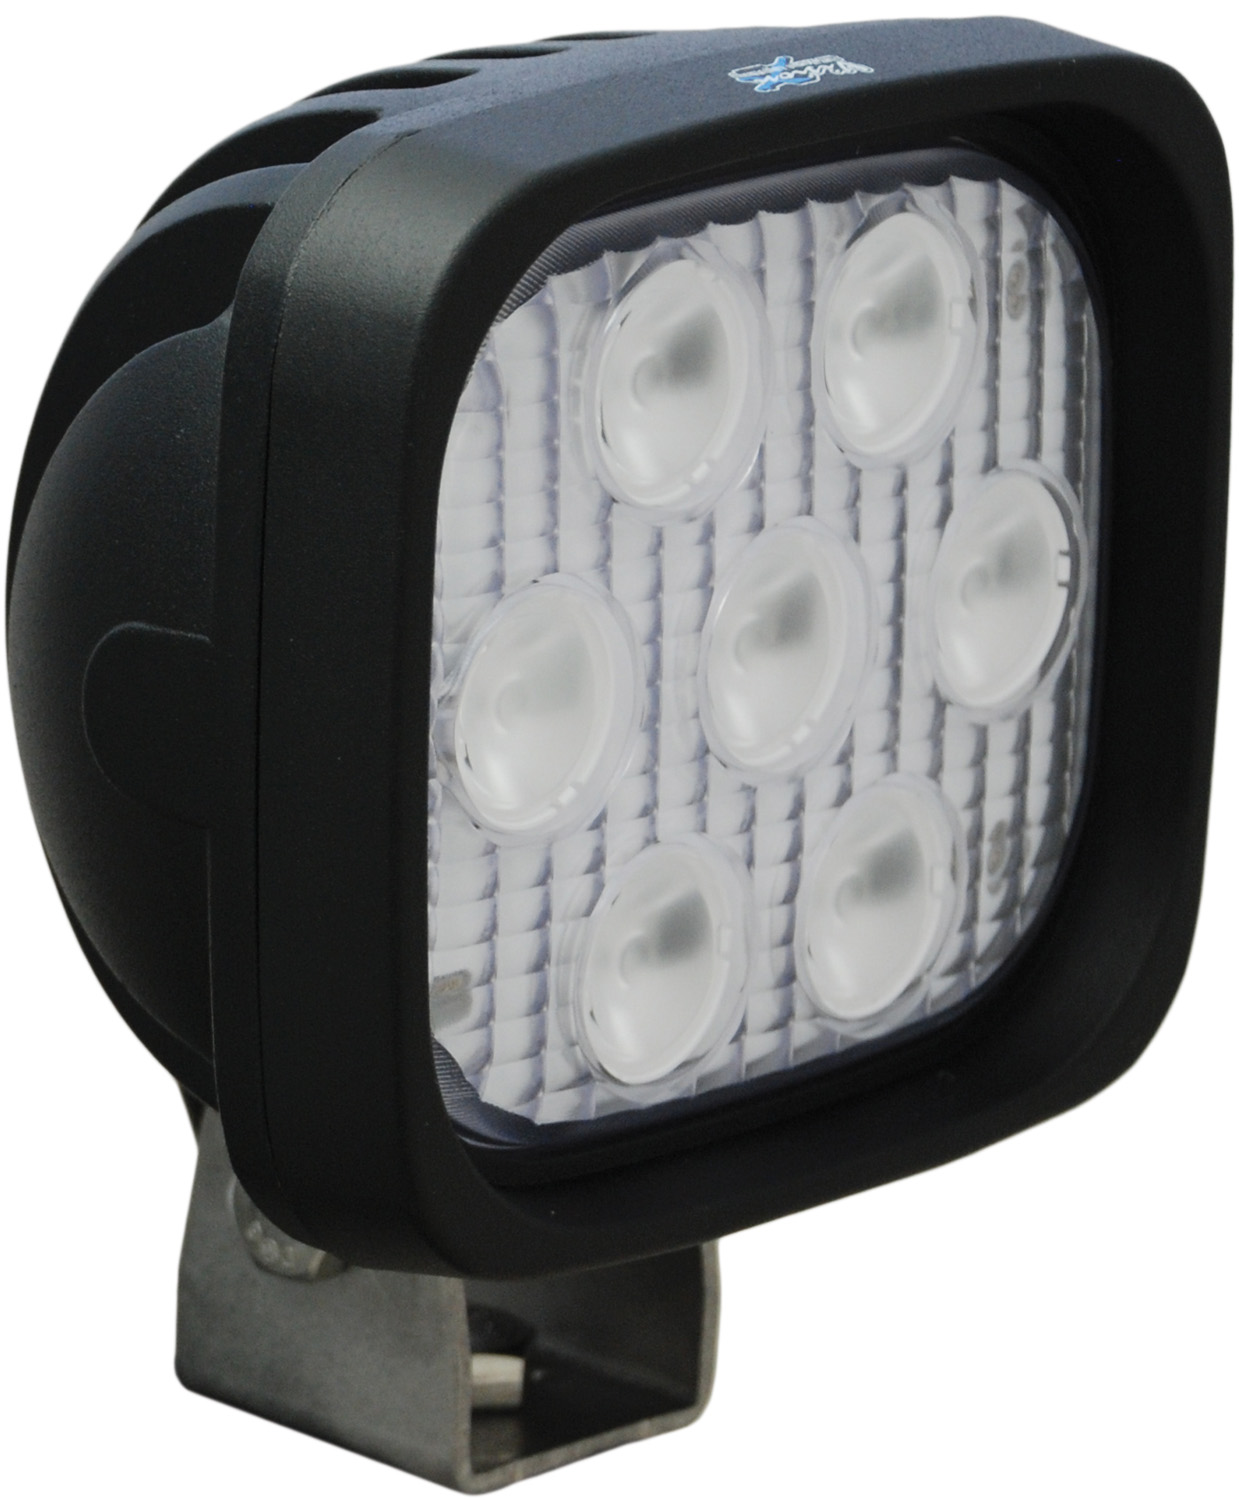 "4"" SQUARE UTILITY MARKET BLACK 7 3W LED'S 60ç EXTRA WIDE"